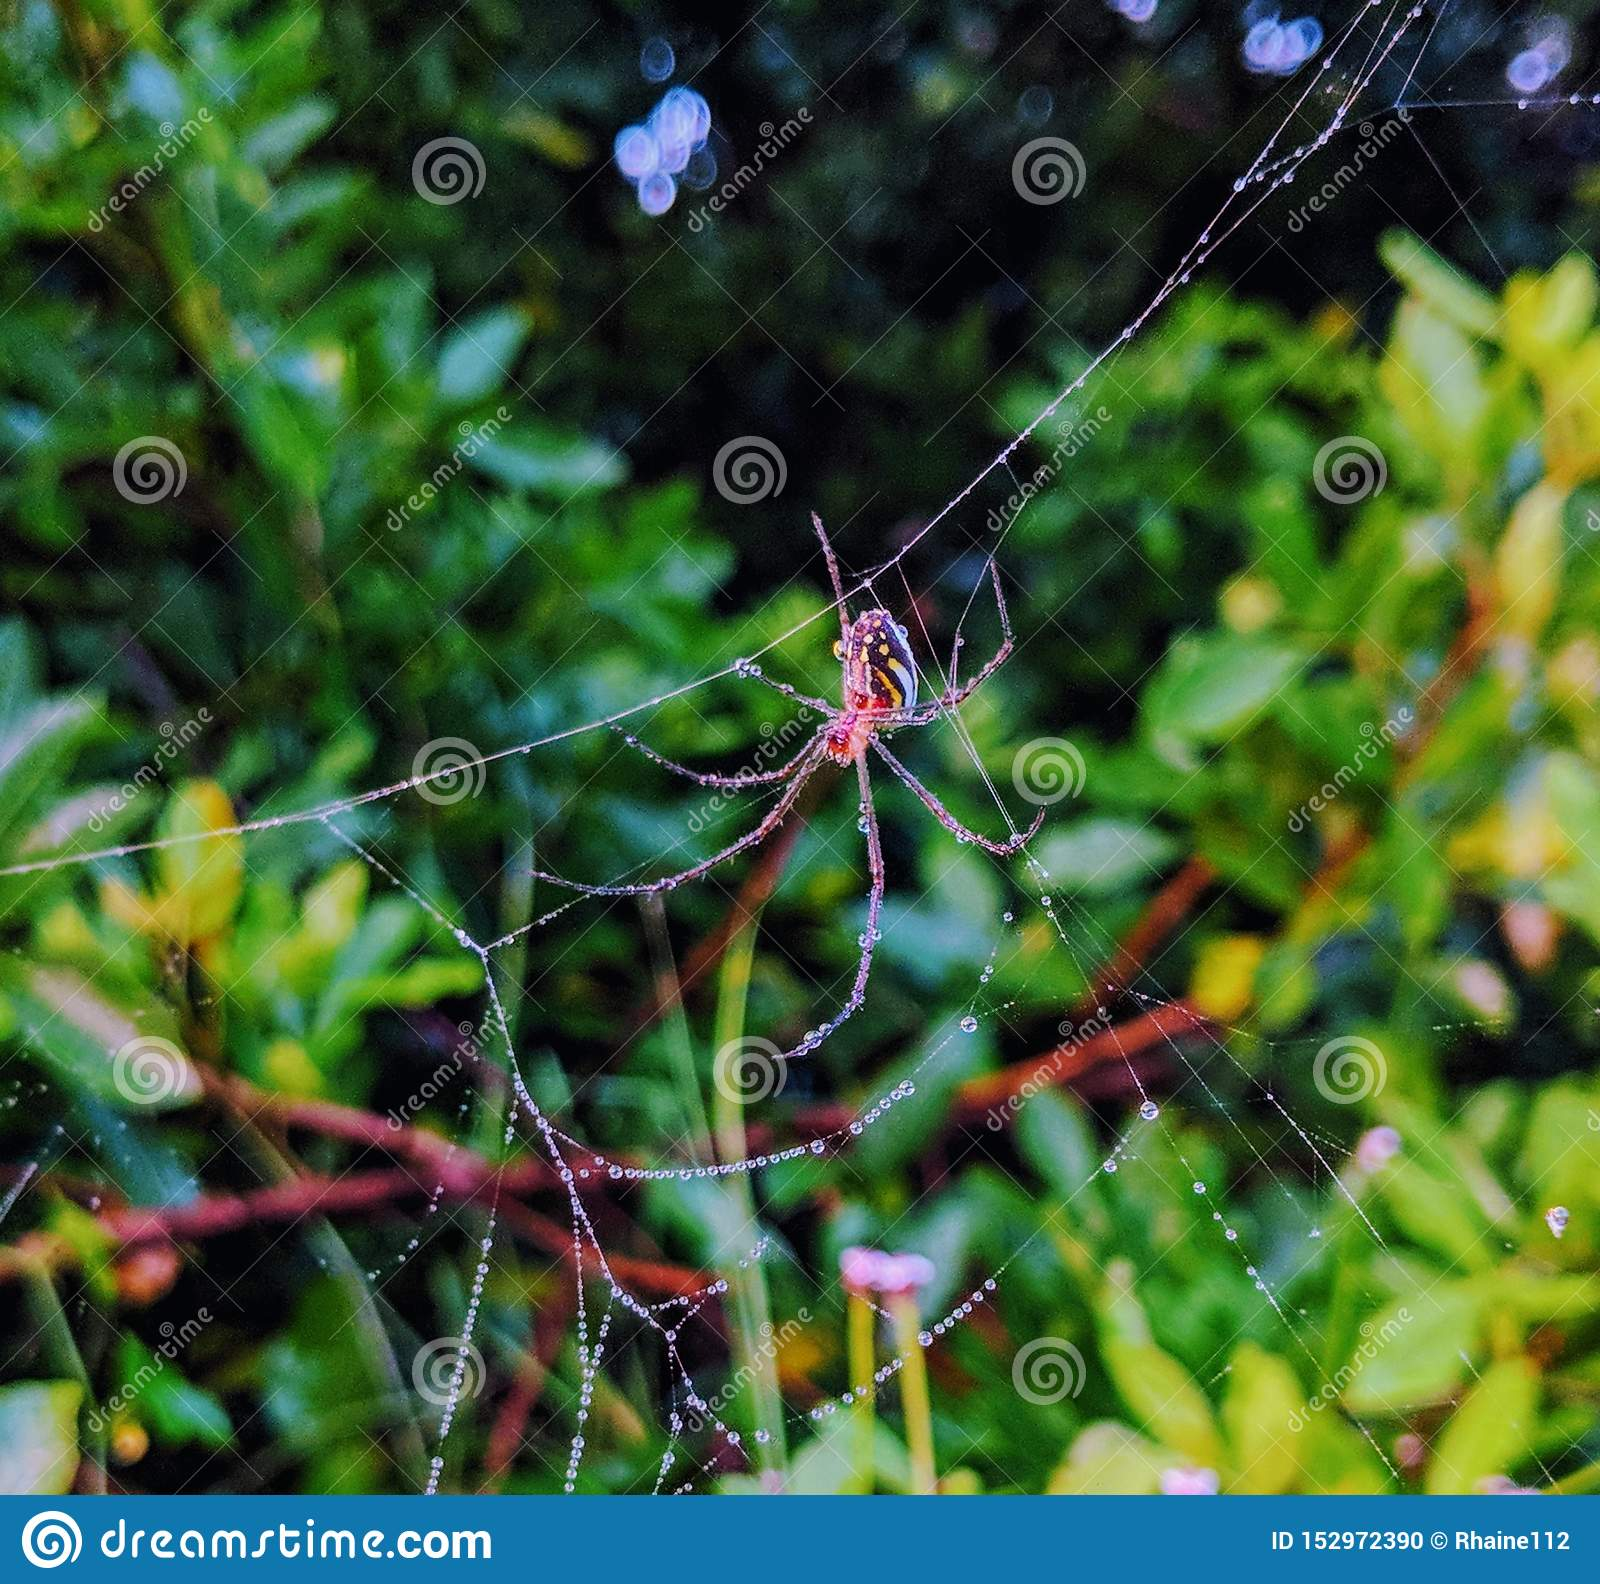 Close-up of red spider on web